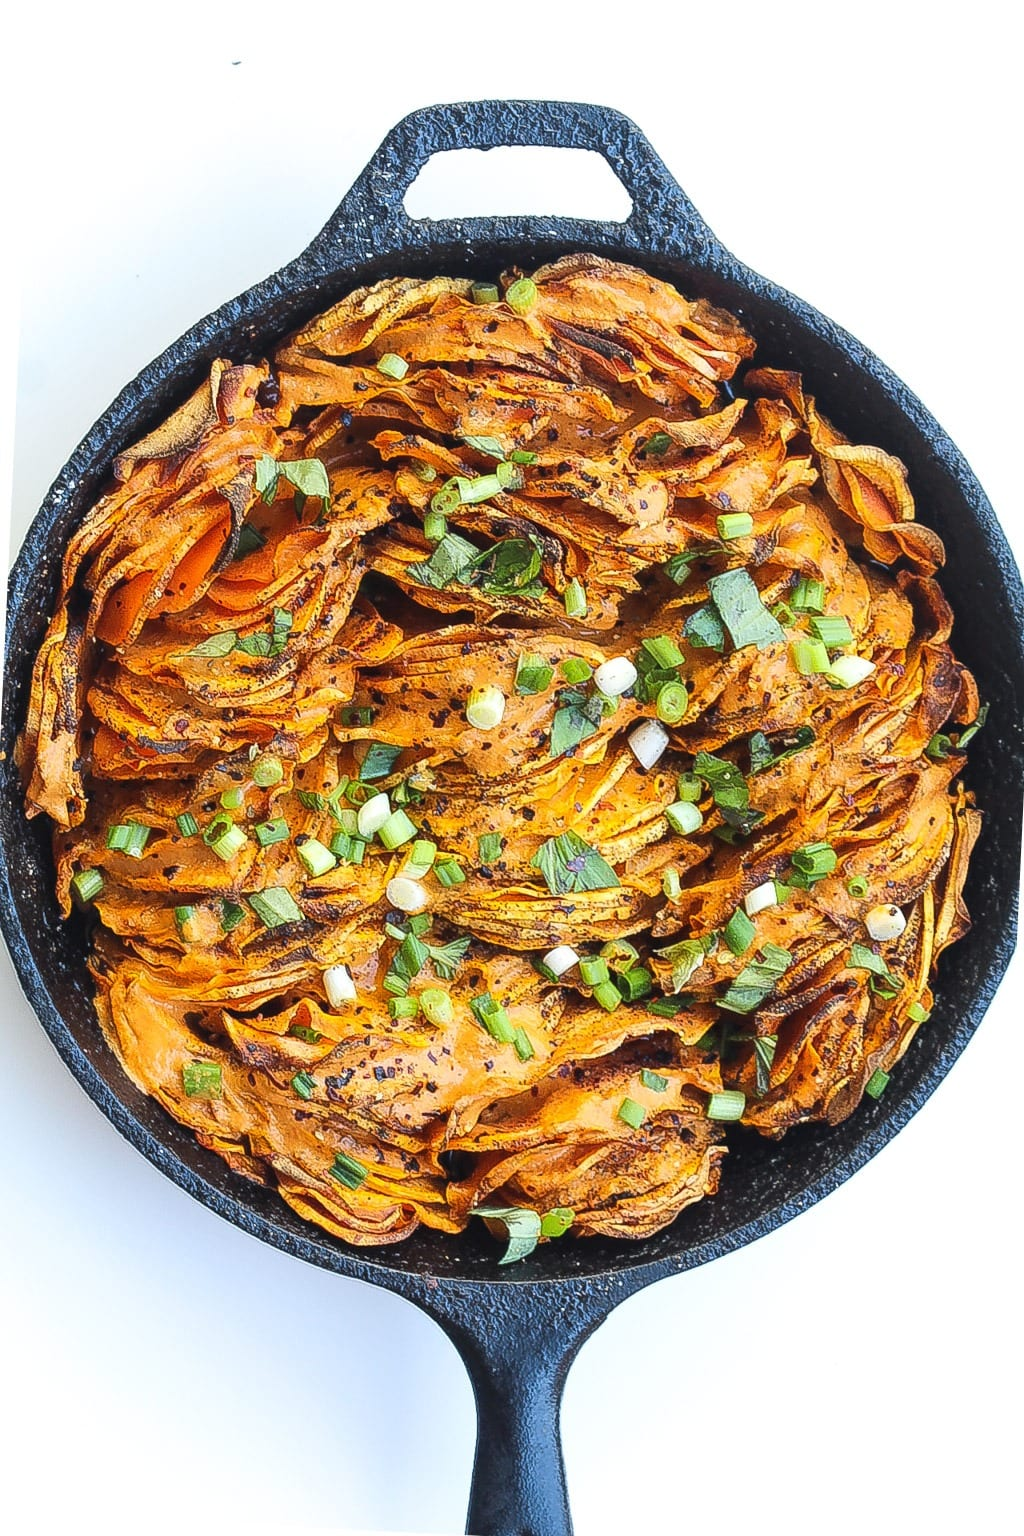 hasselback sweet potatoes in a skillet topped with green onions and red pepper sauce